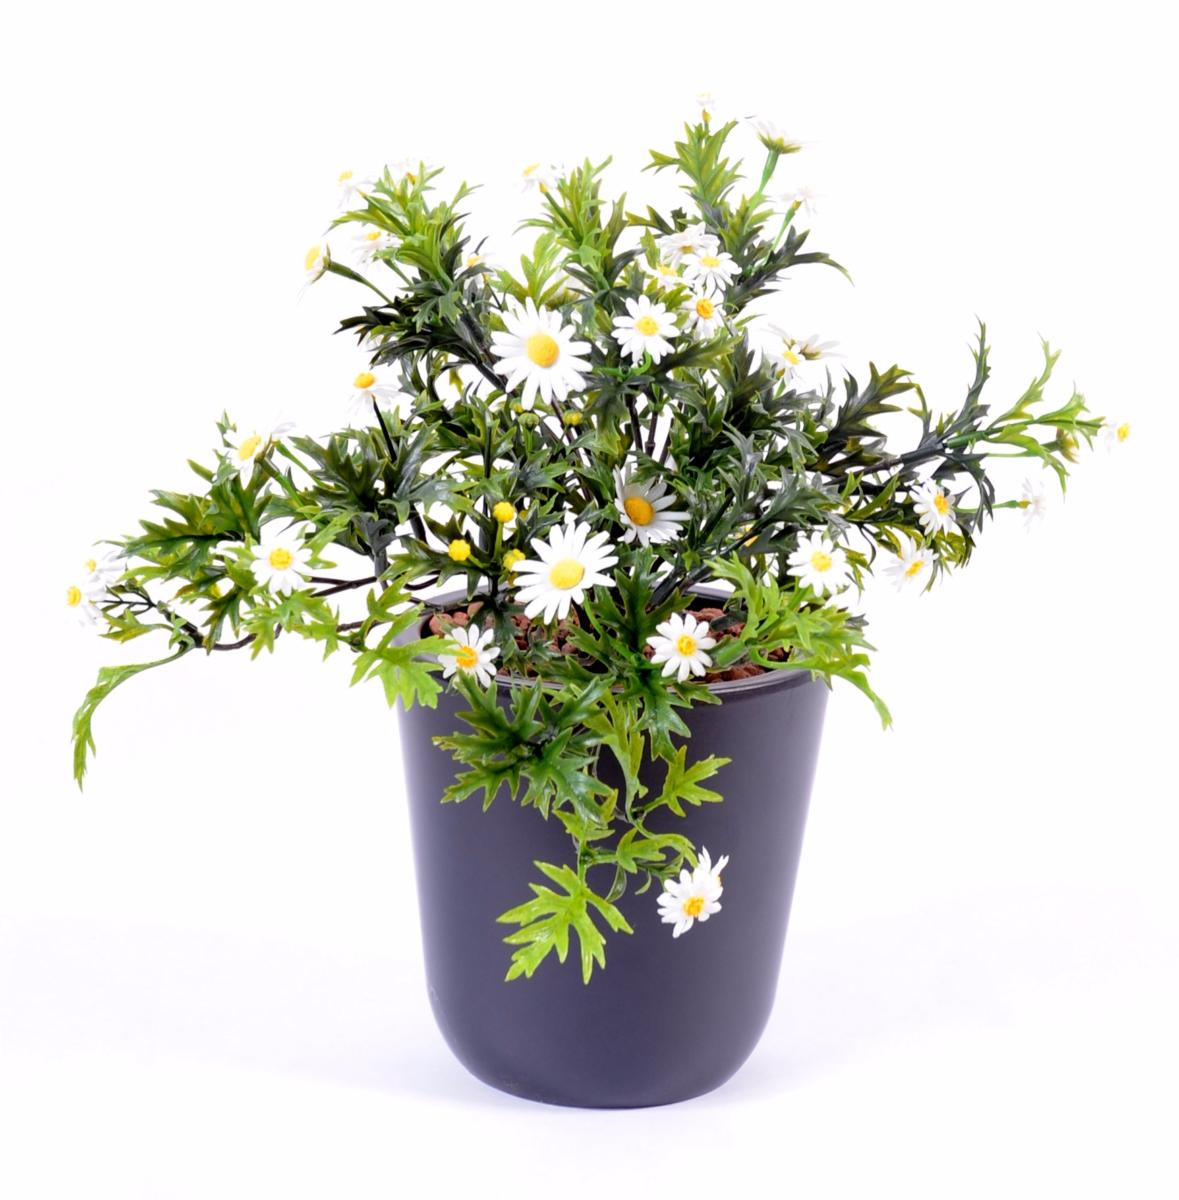 Plante artificielle marguerite en piquet plastique for Belle plante artificielle